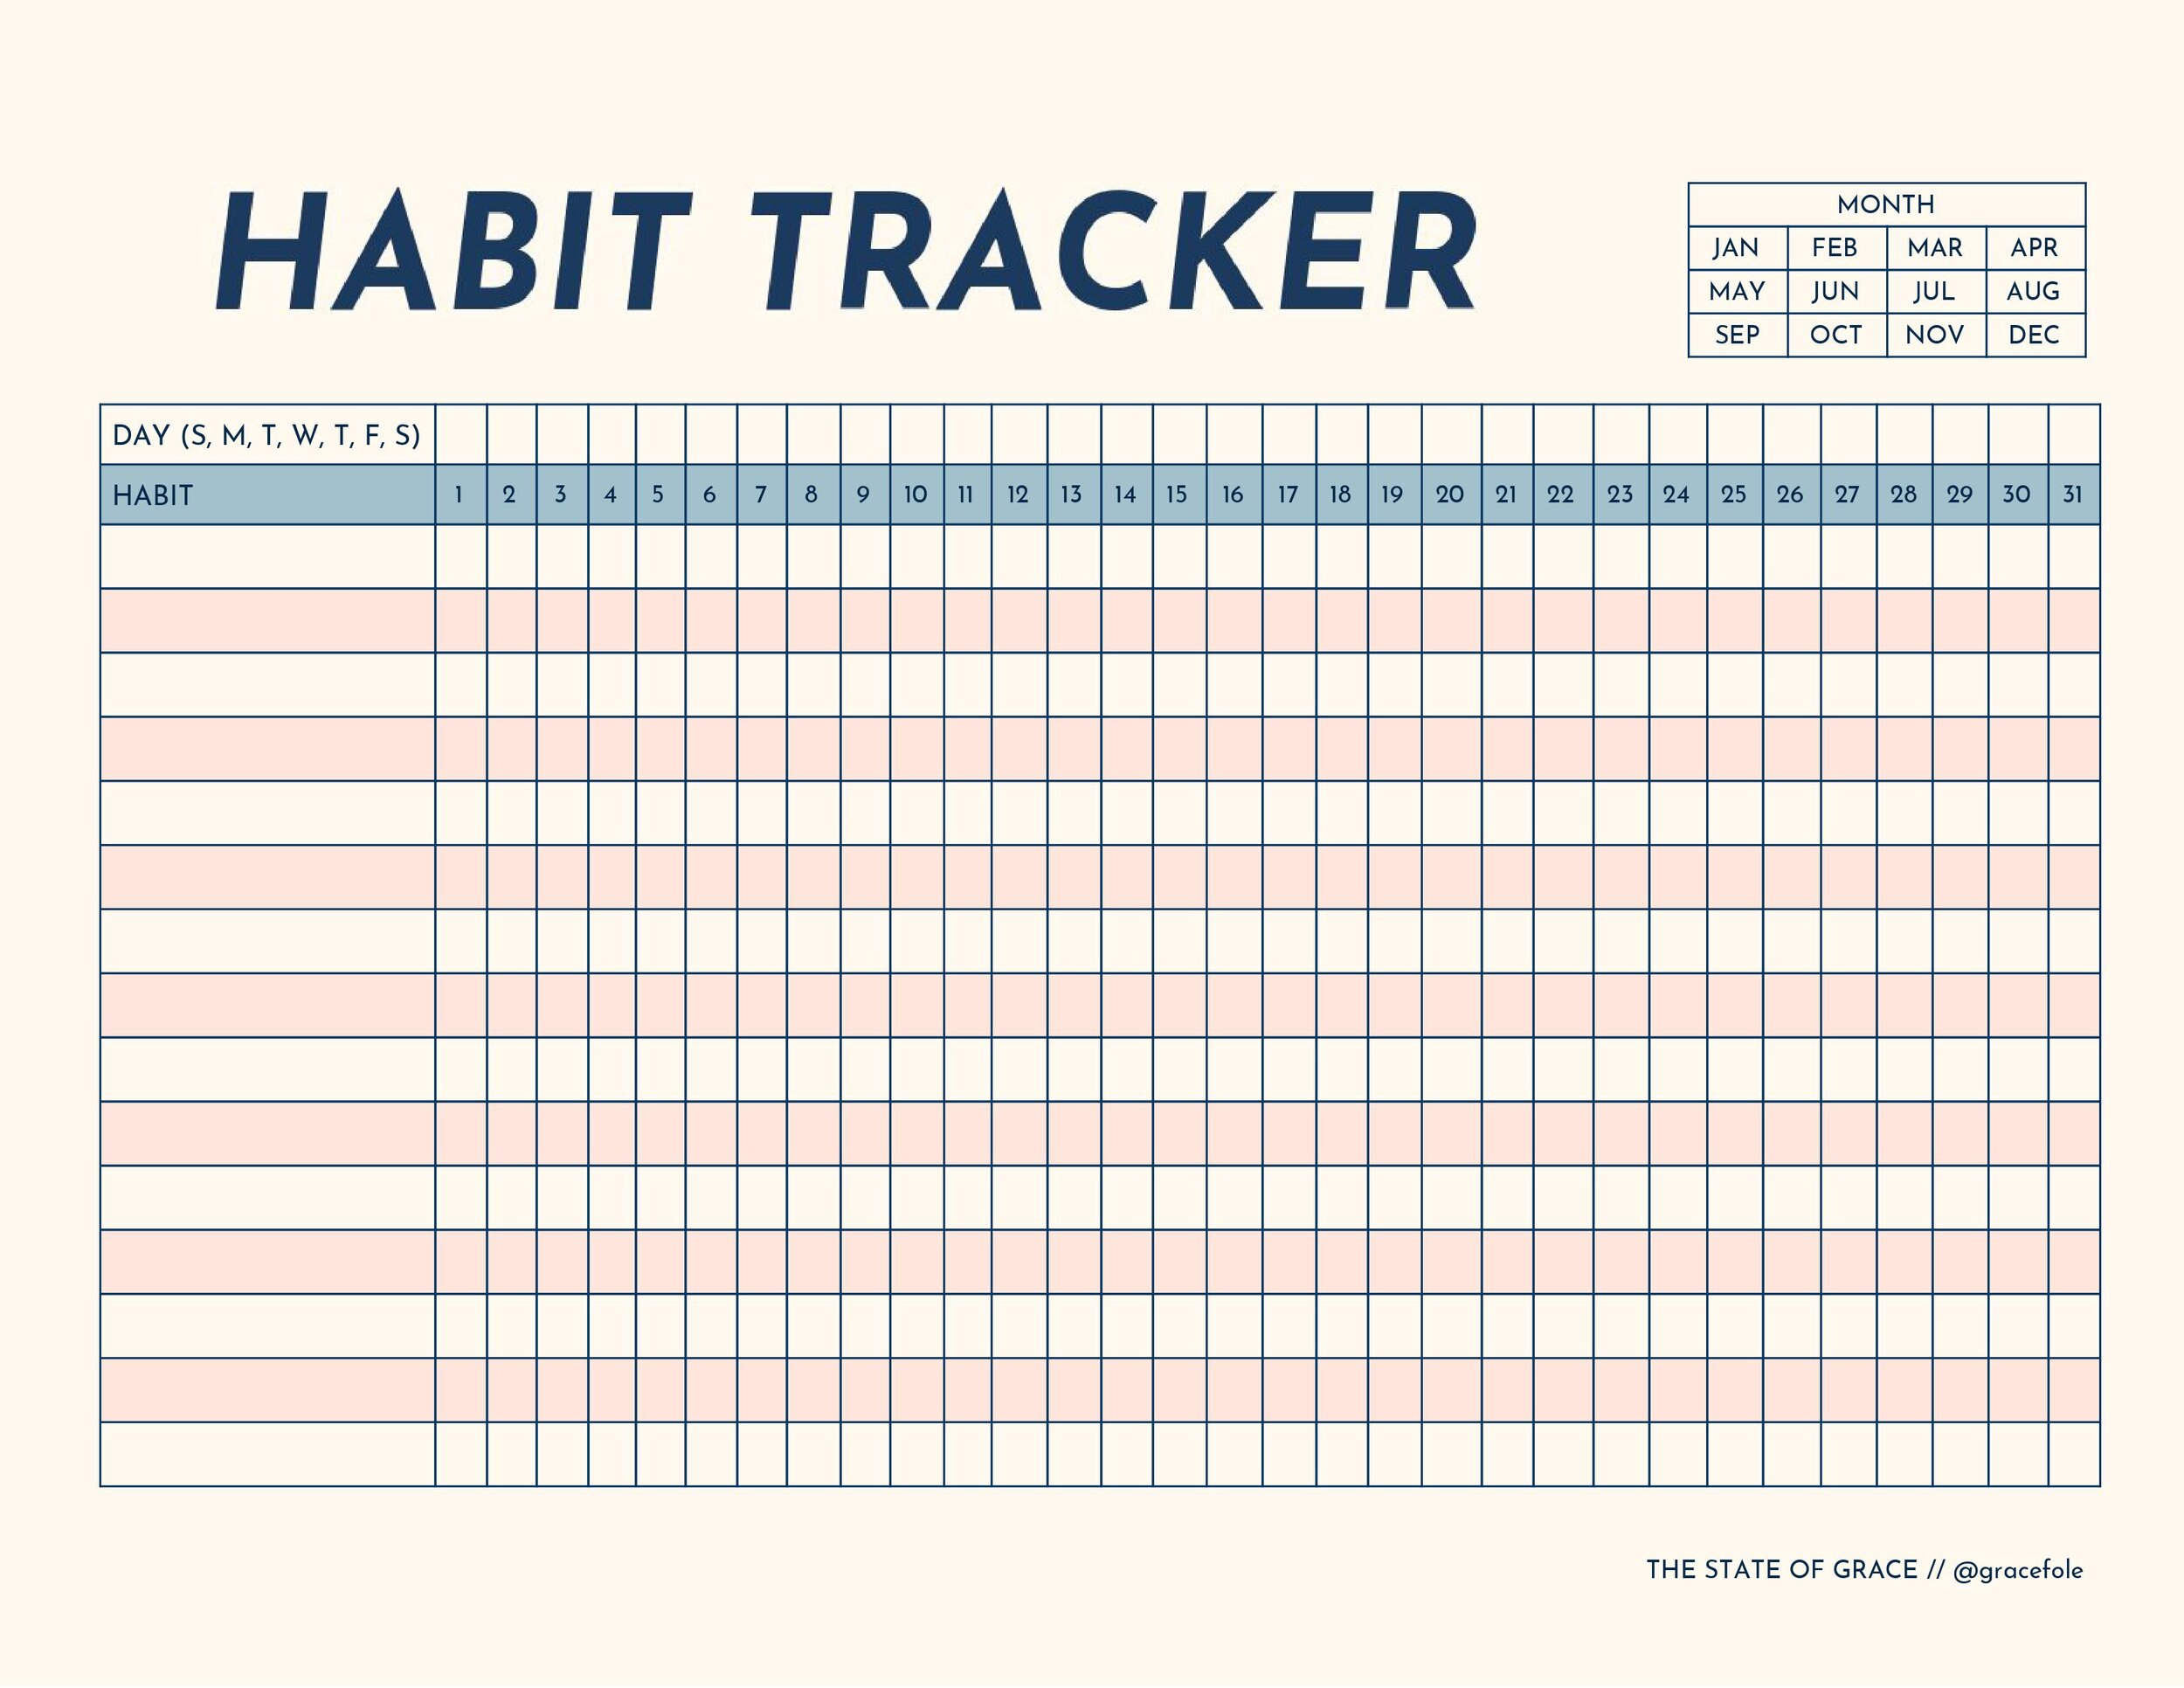 You can download my Habit Tracker template by clicking on the image above.